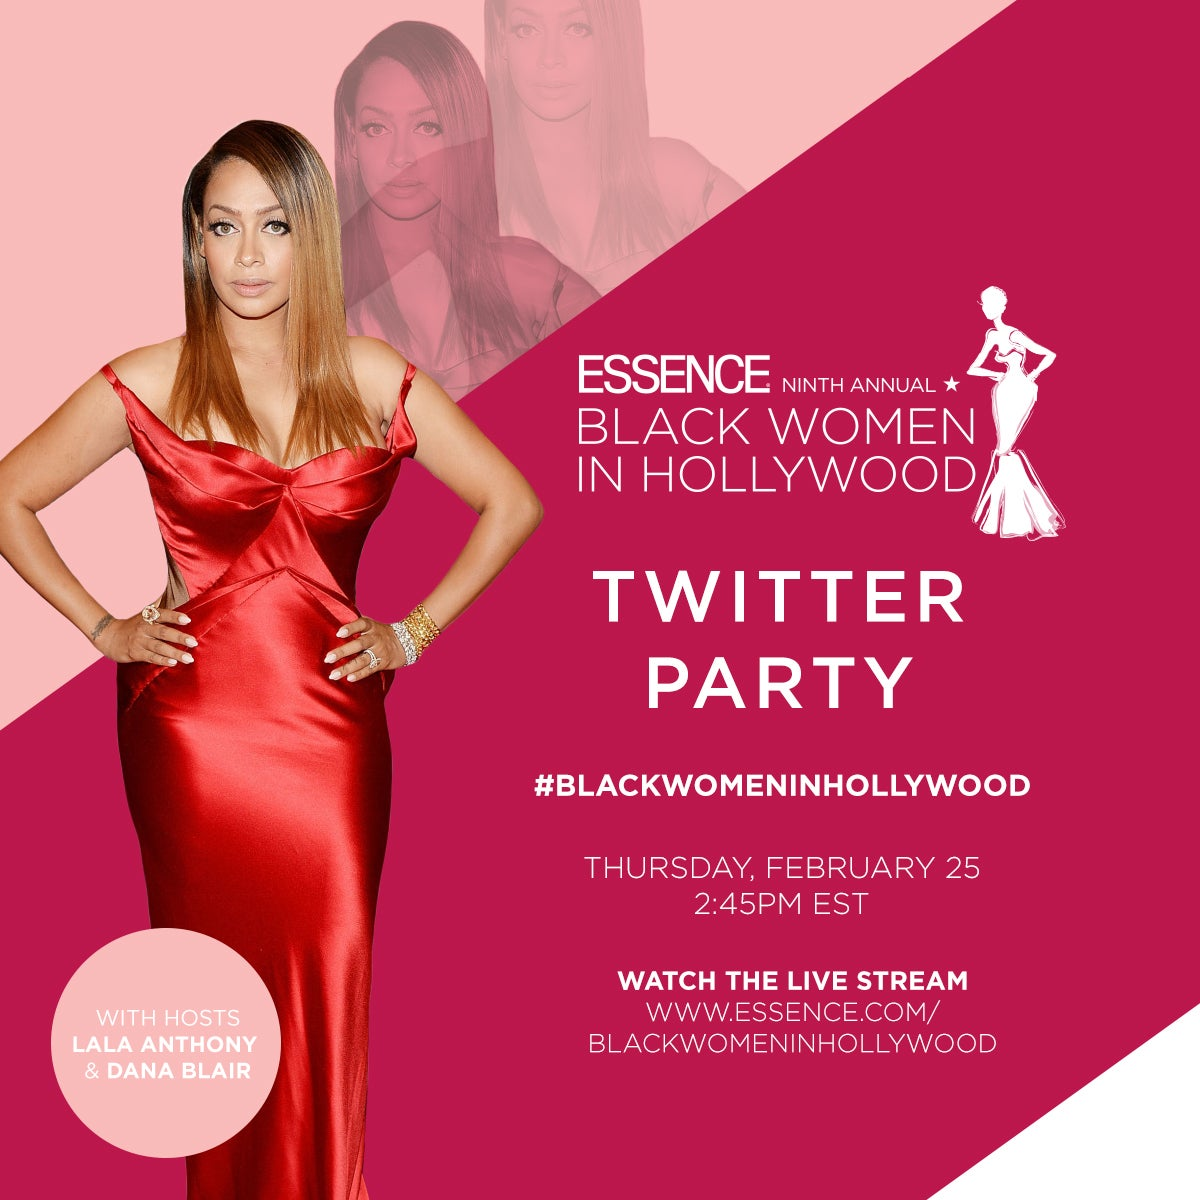 LaLa Anthony to Host ESSENCE Black Women in Hollywood Red Carpet Livestream Today!